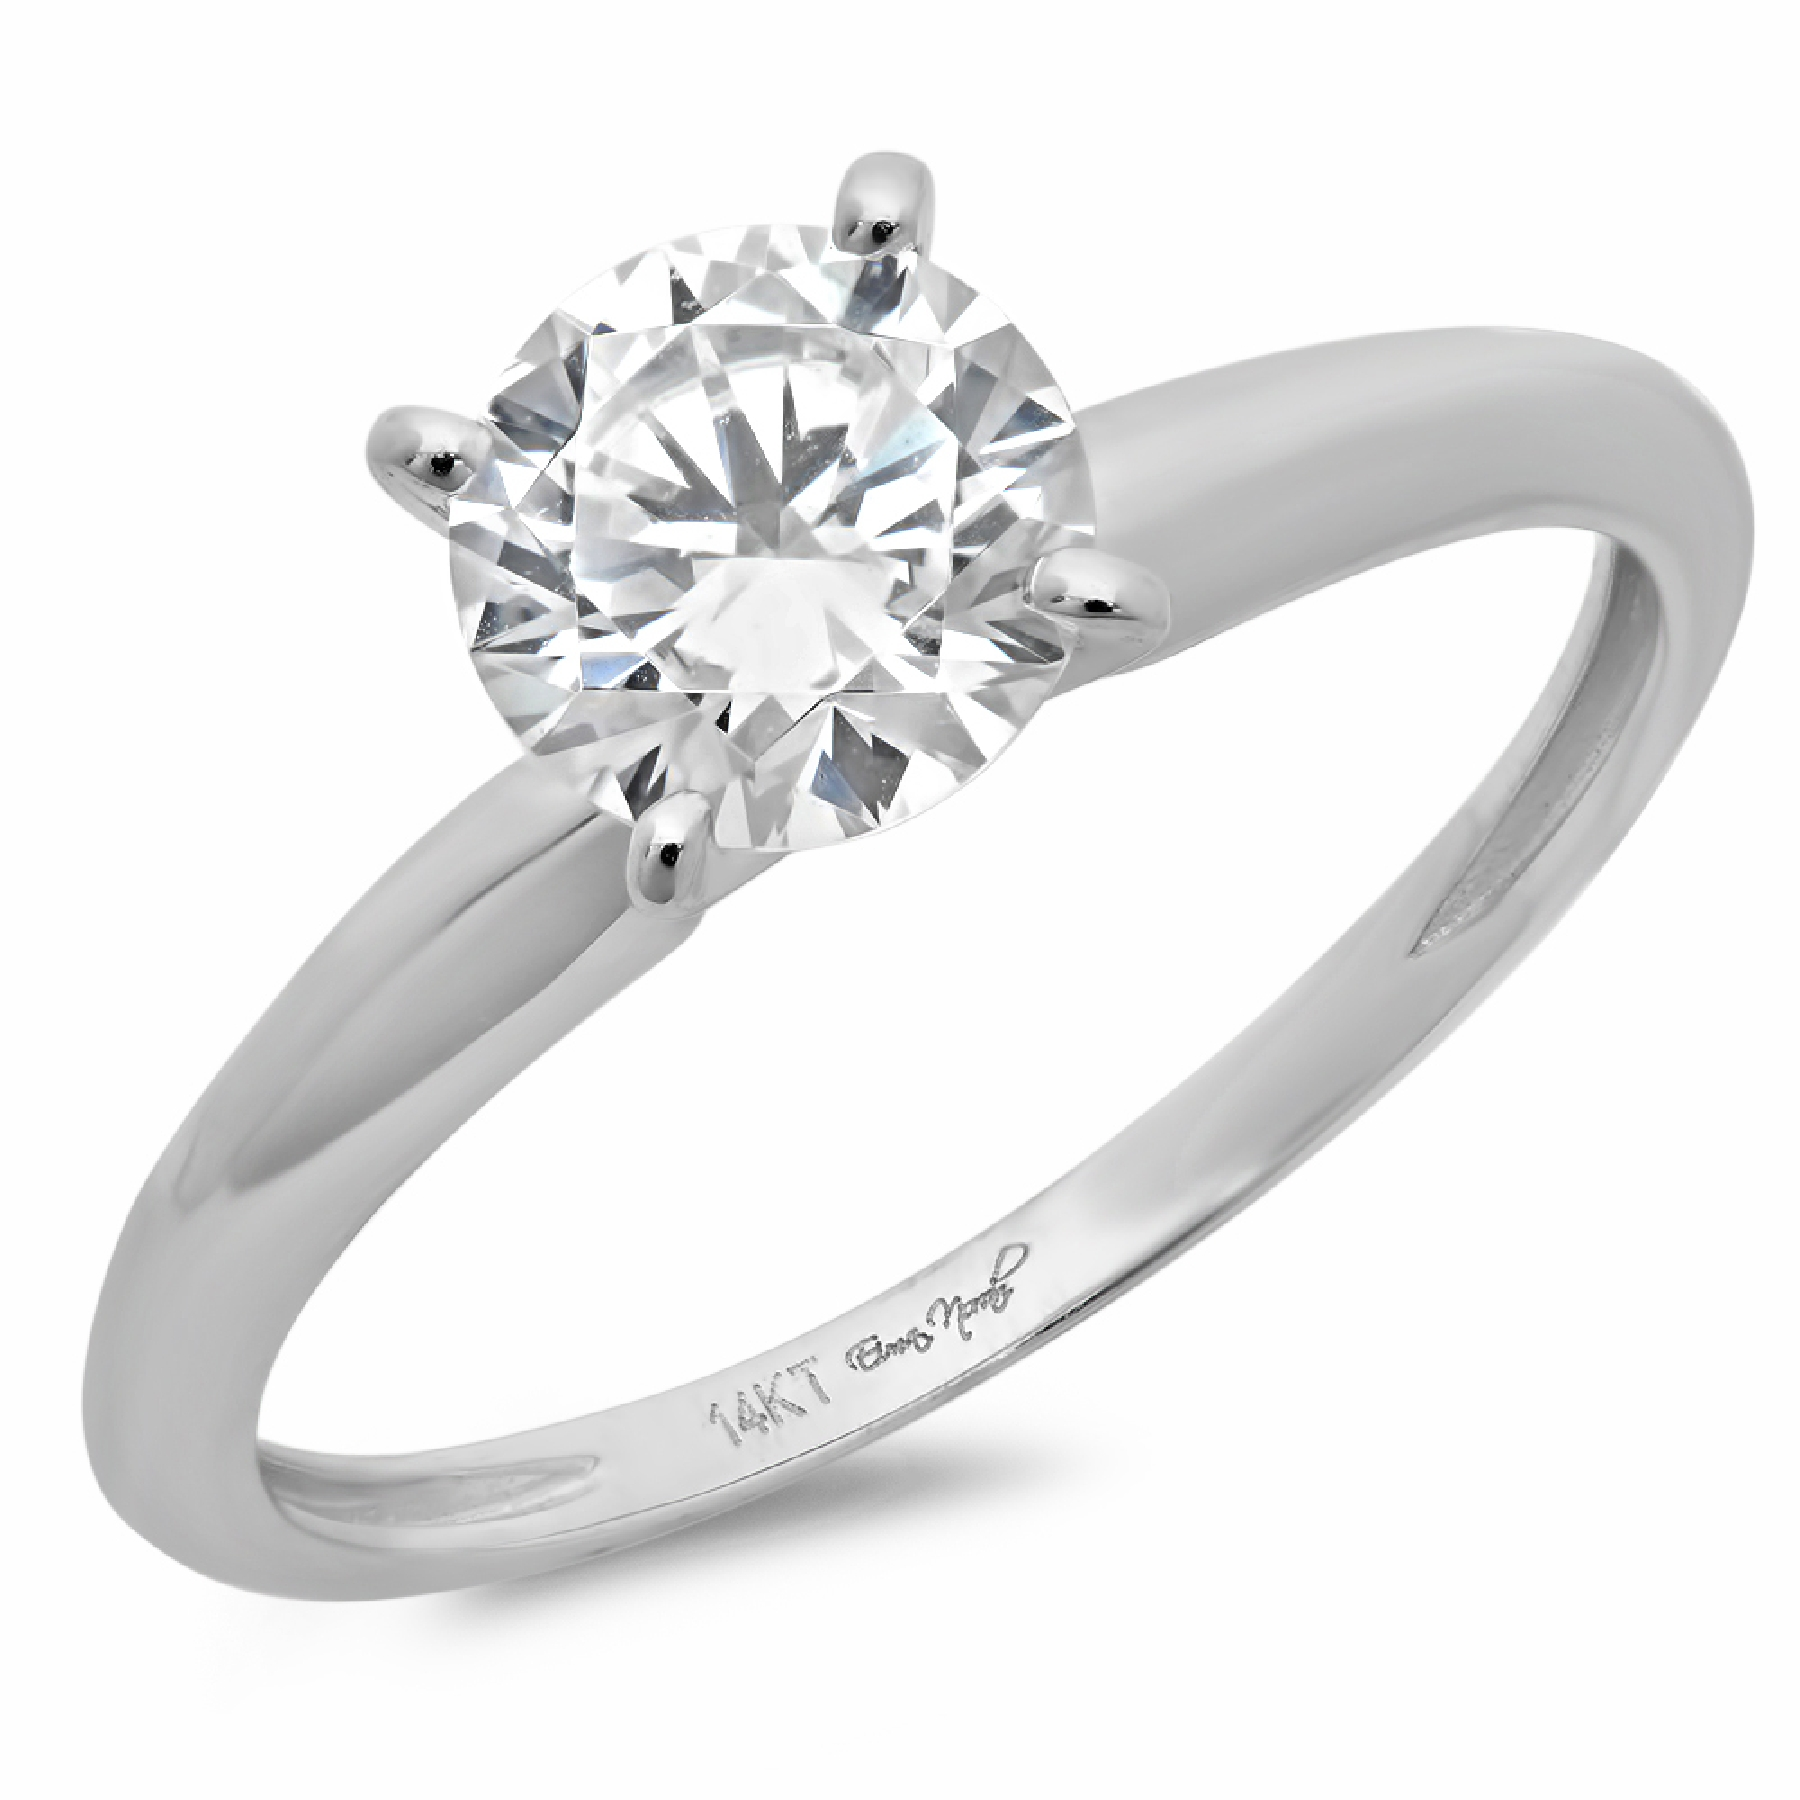 0.5 Round prong Solitaire Bridal Promise Engagement Wedding Ring 14k White gold